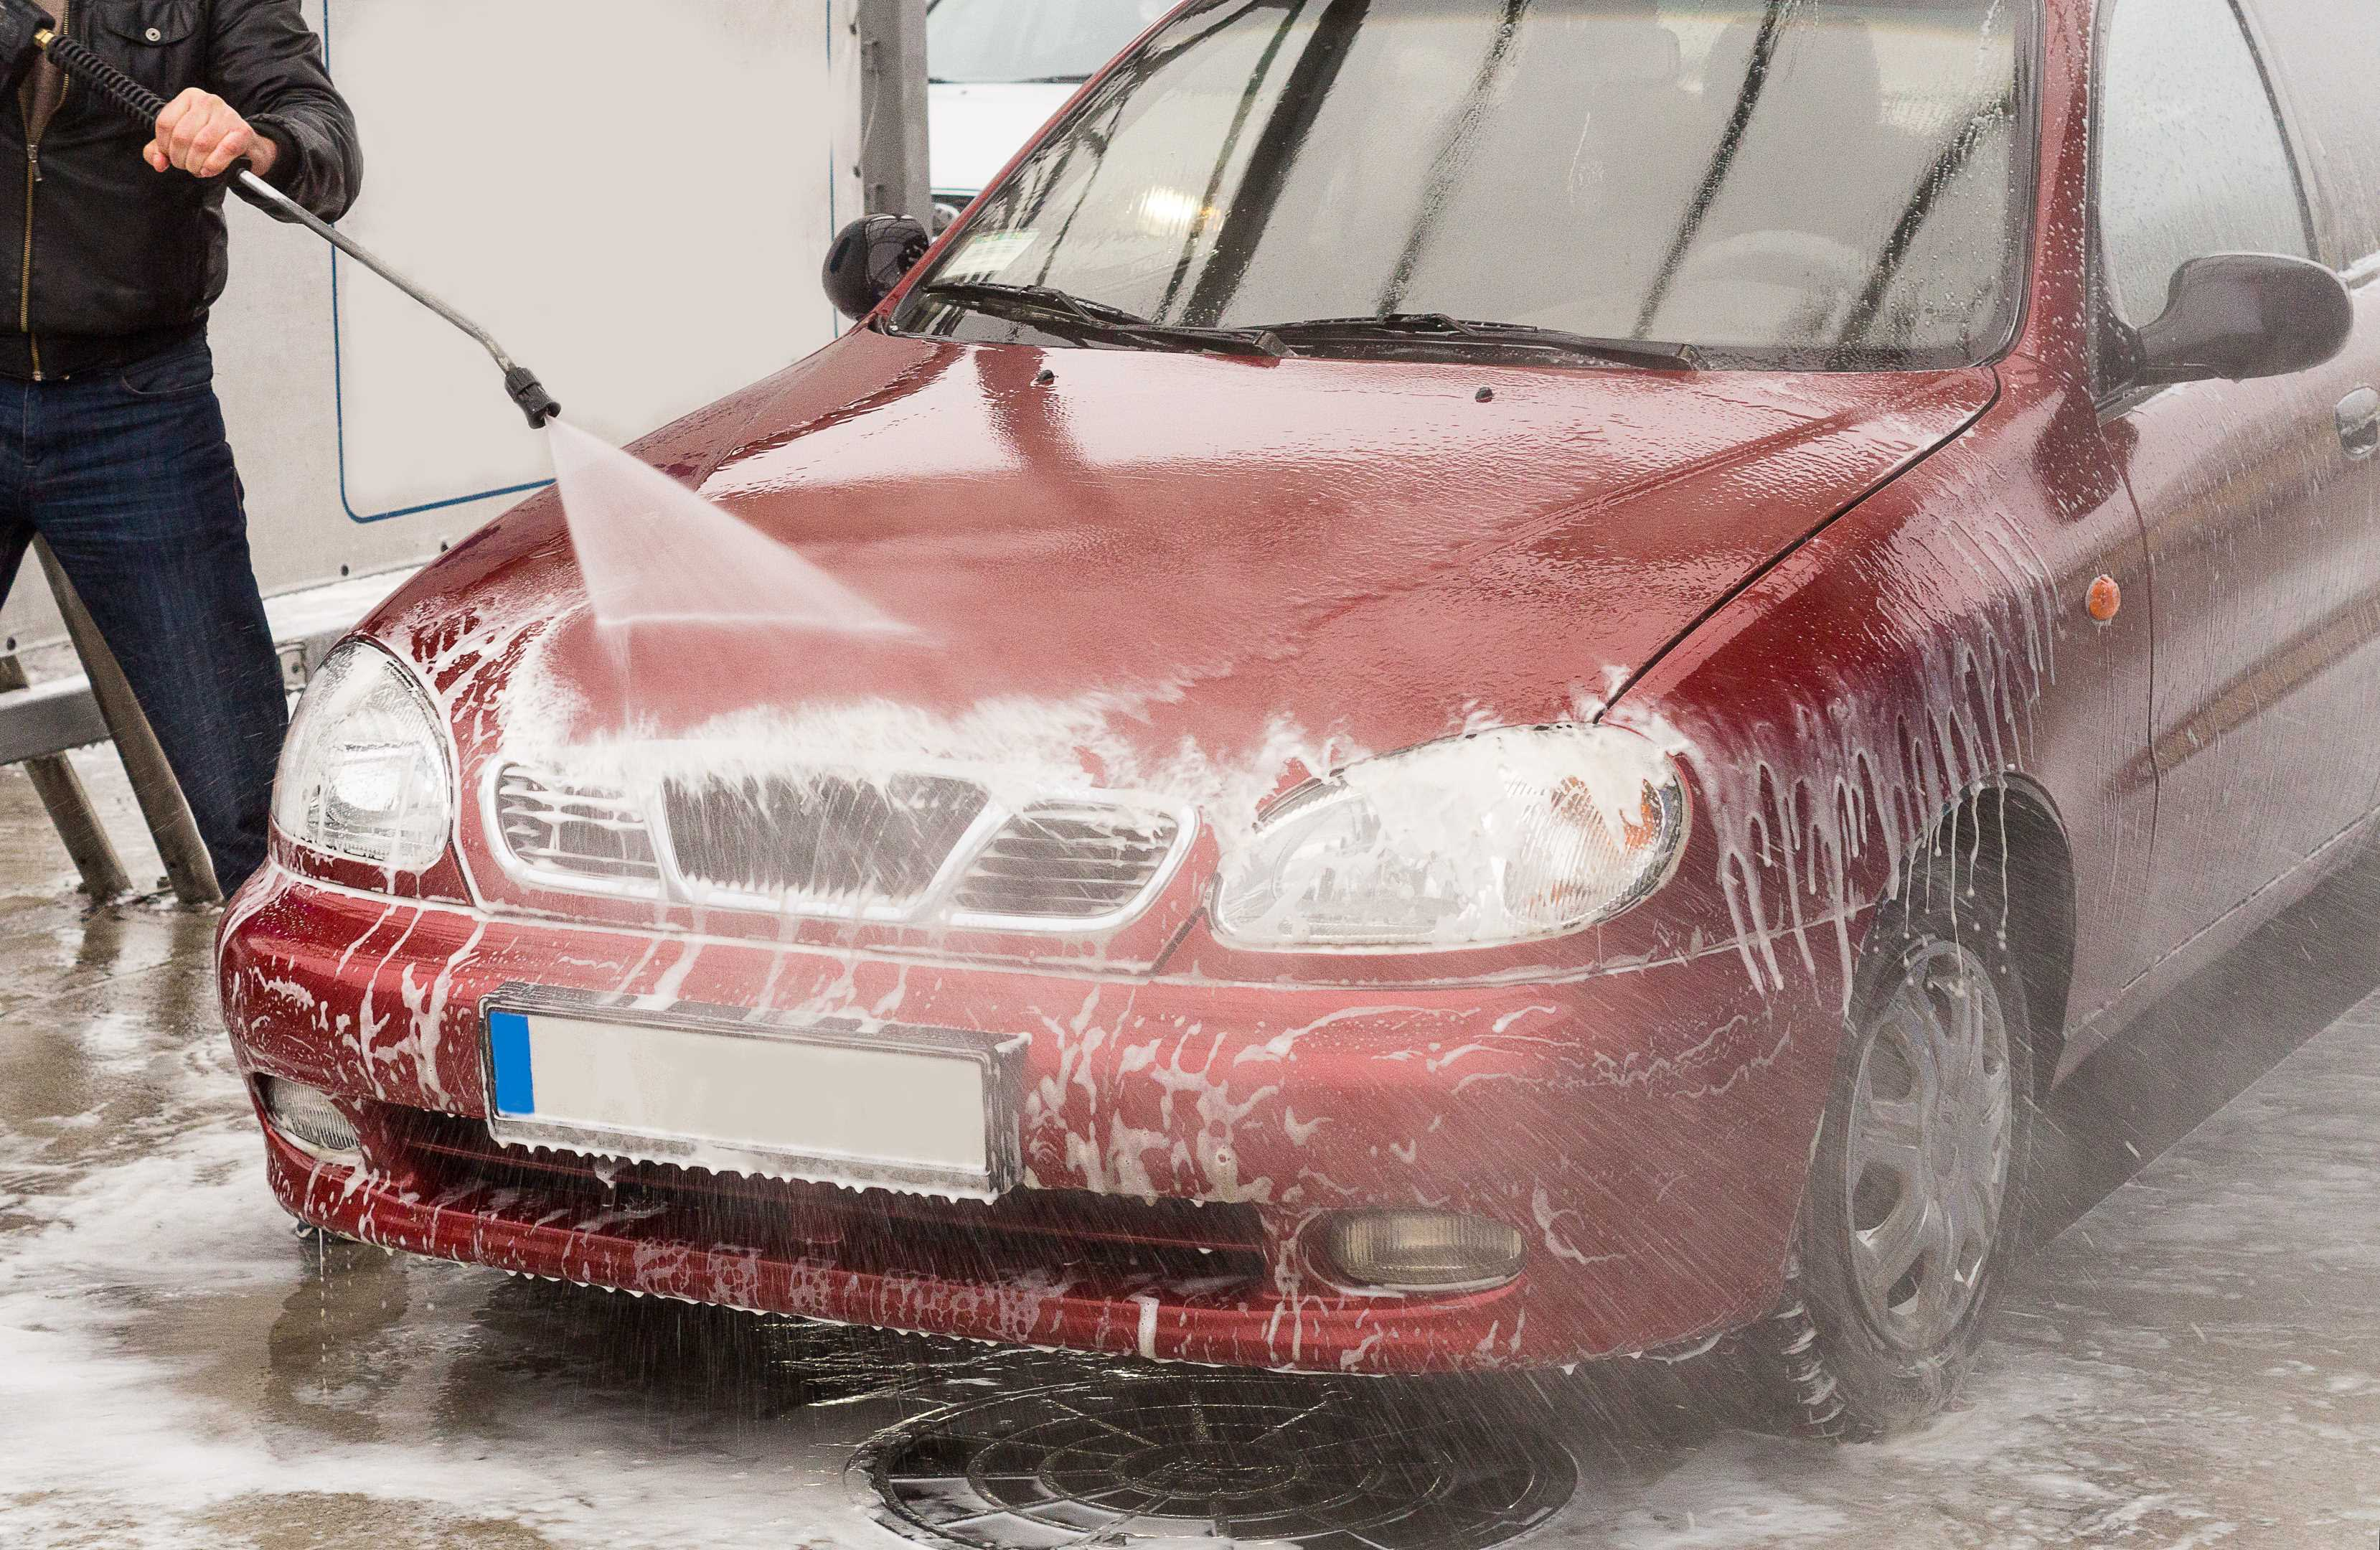 Jay's Car Valeting - Best Car Wash & Valeting in Chichester